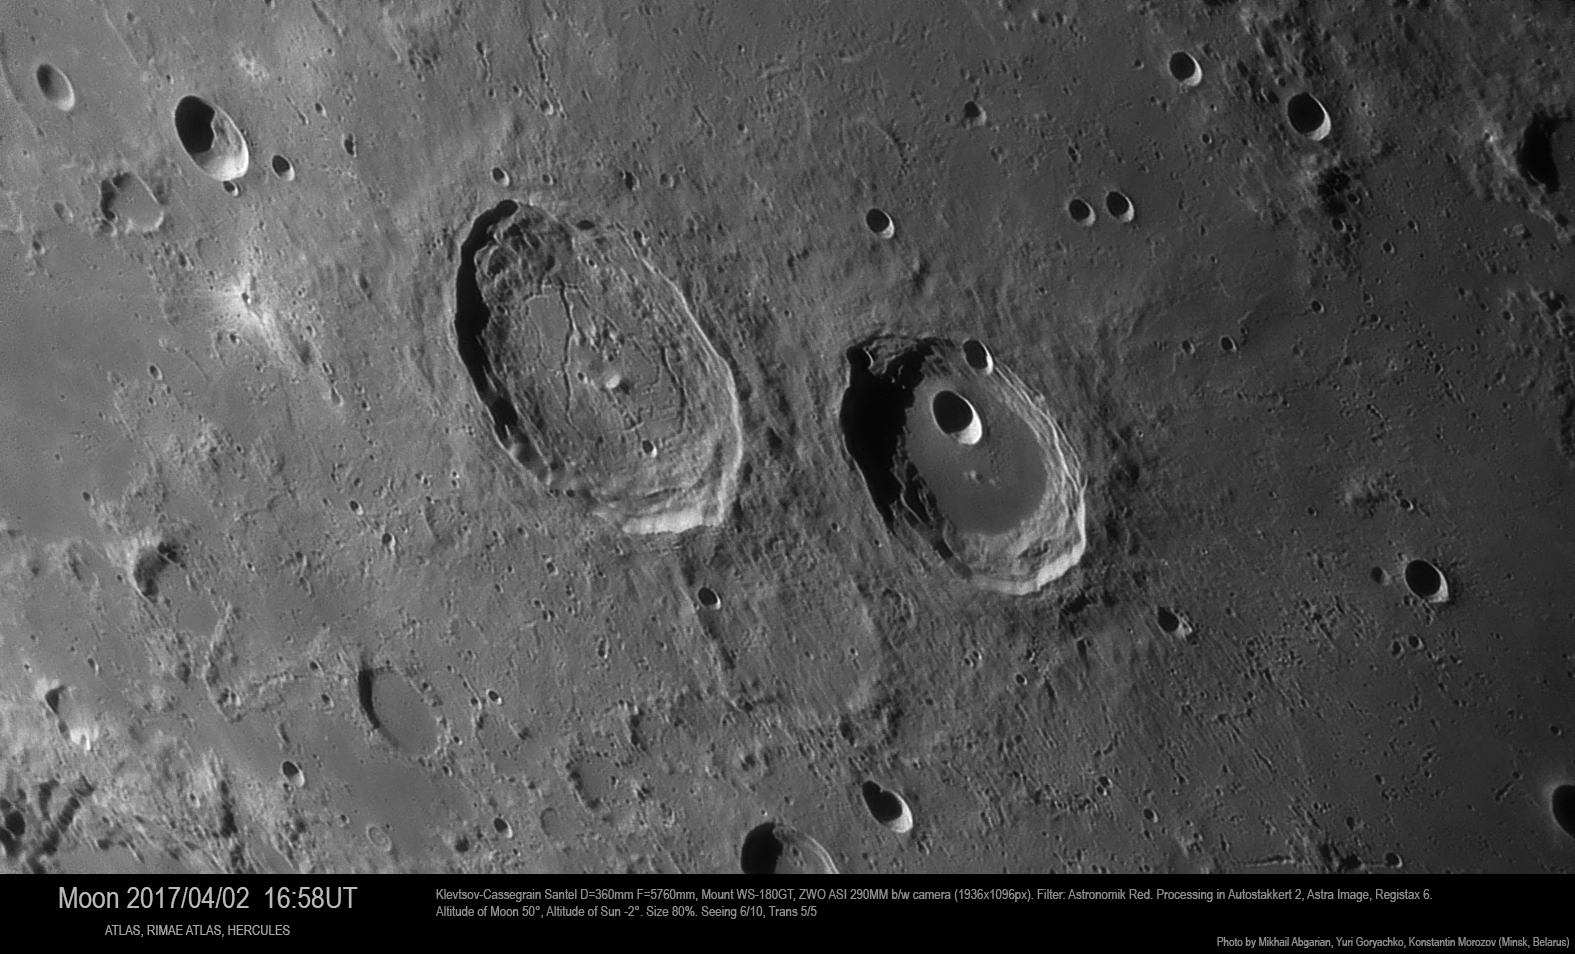 Moon_20170402_Atlas.jpg